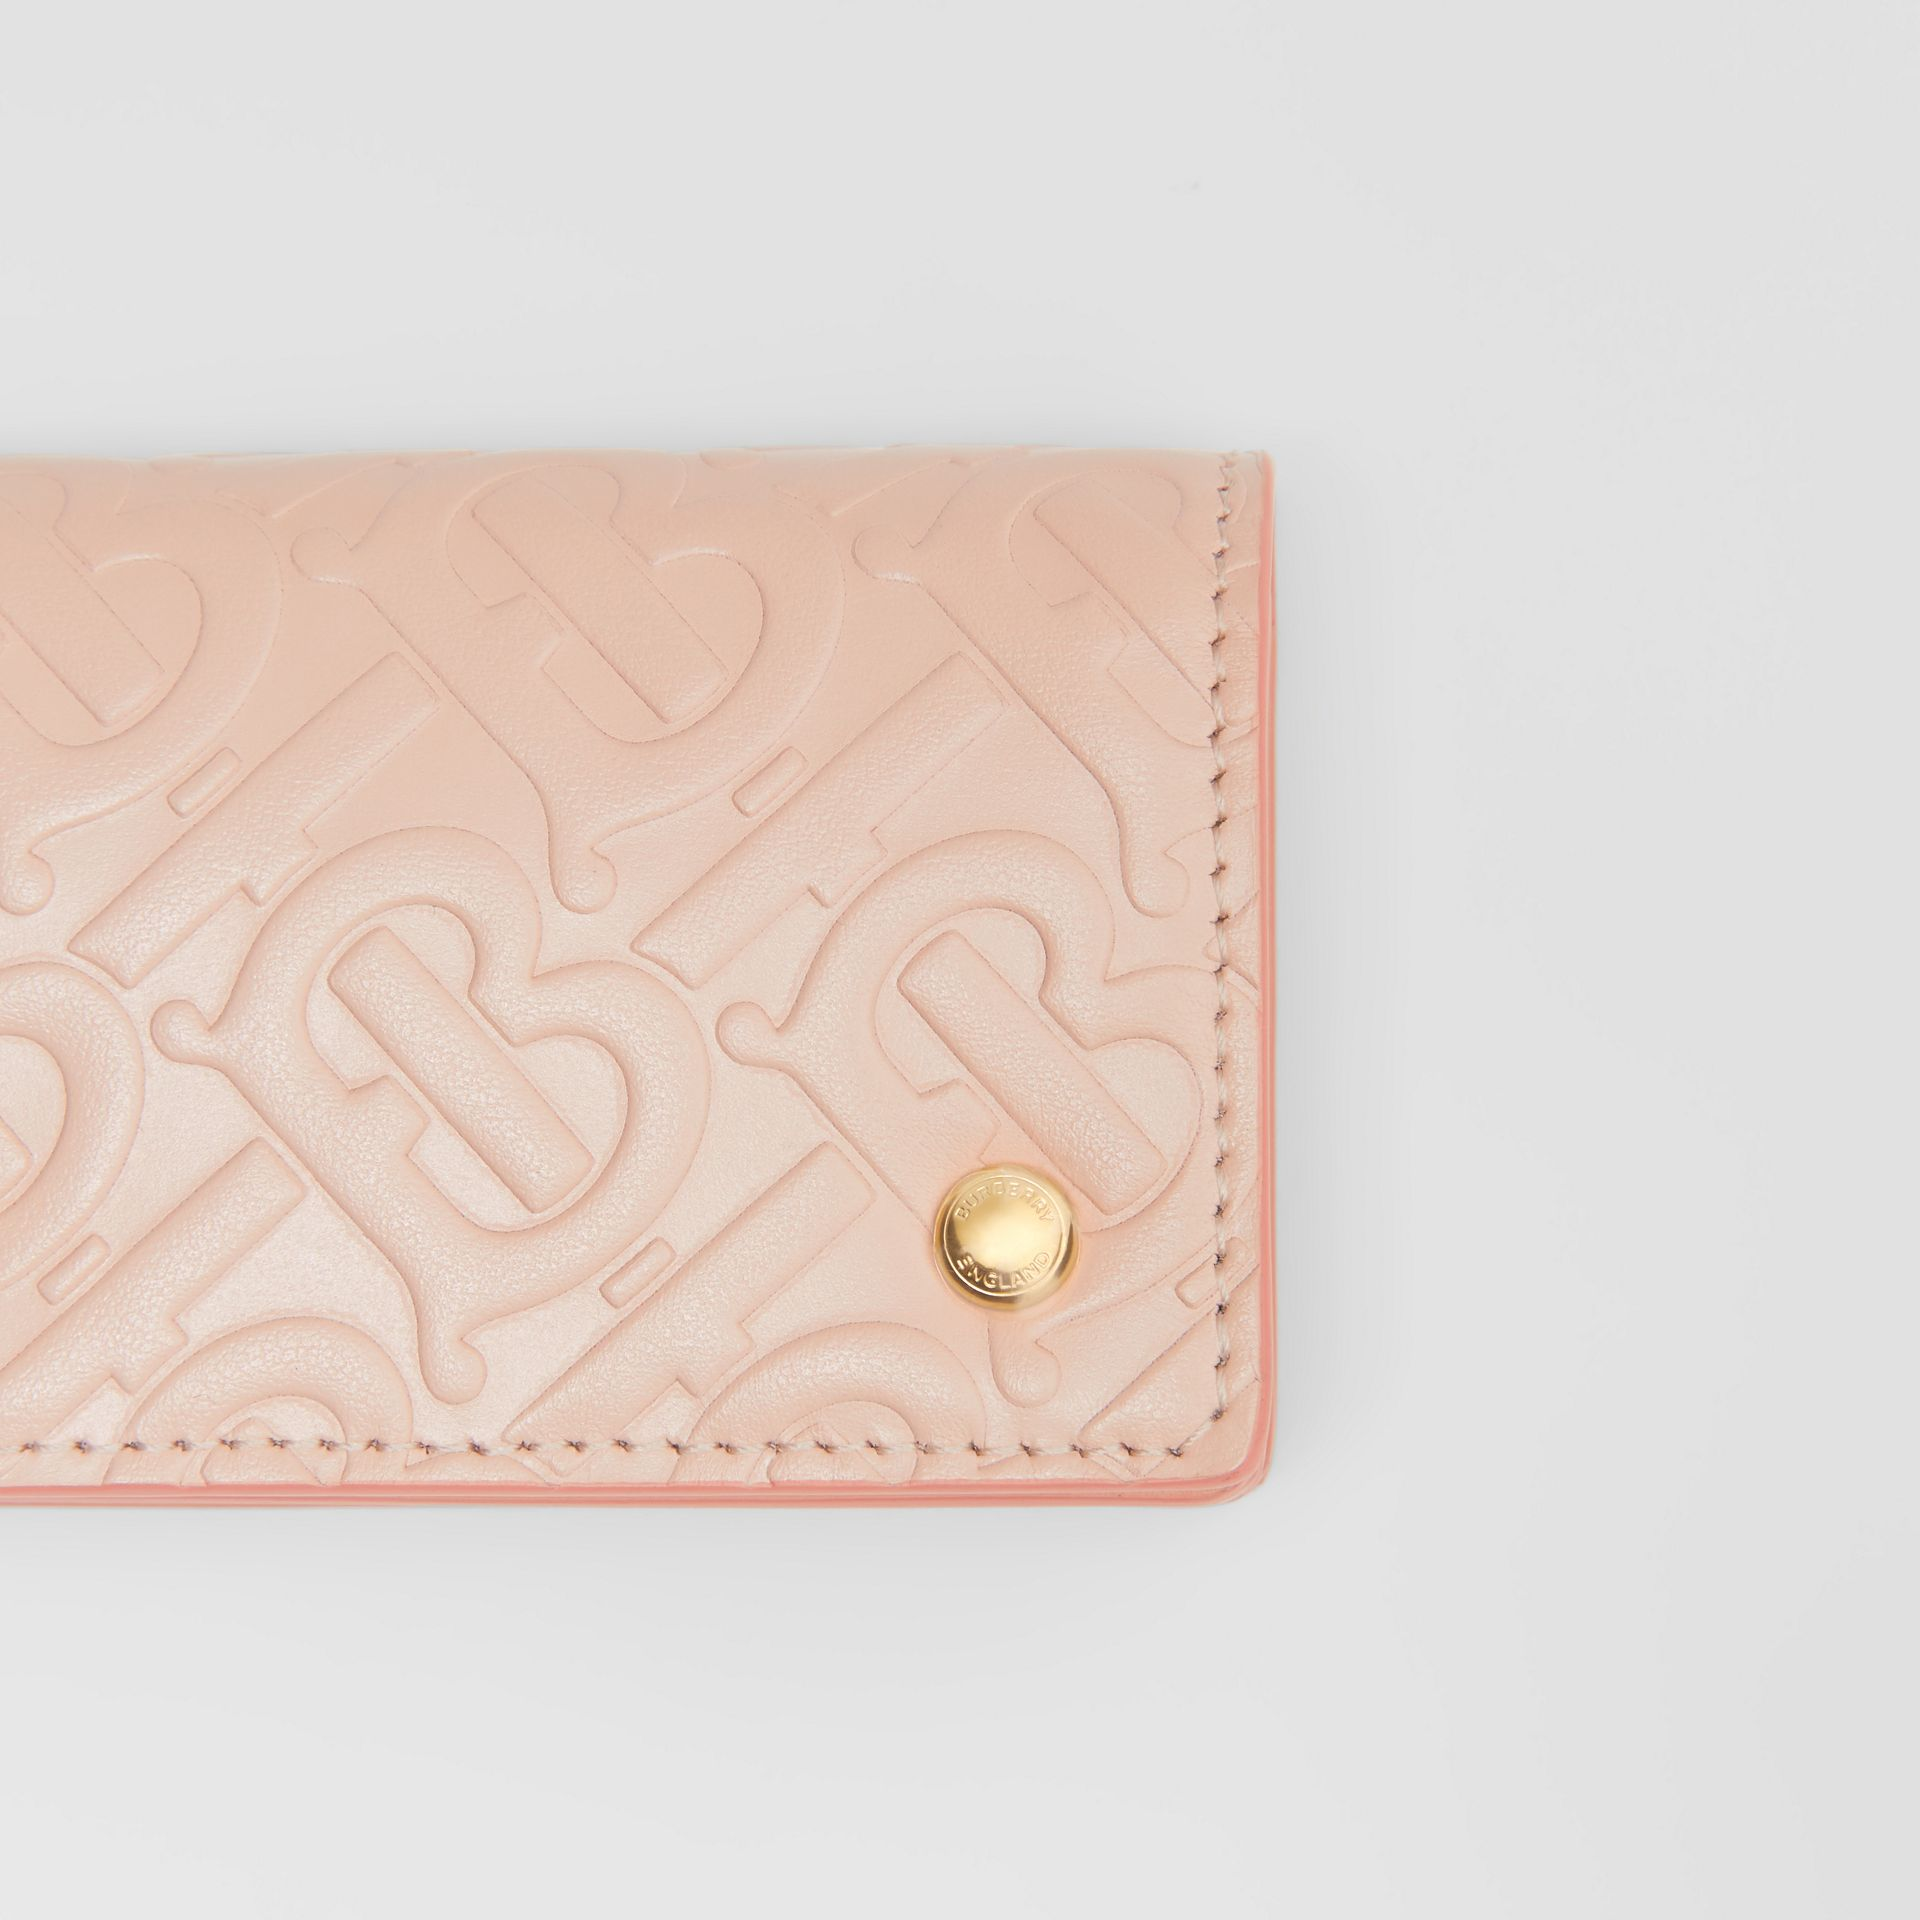 Monogram Leather Card Case in Rose Beige - Women | Burberry - gallery image 1